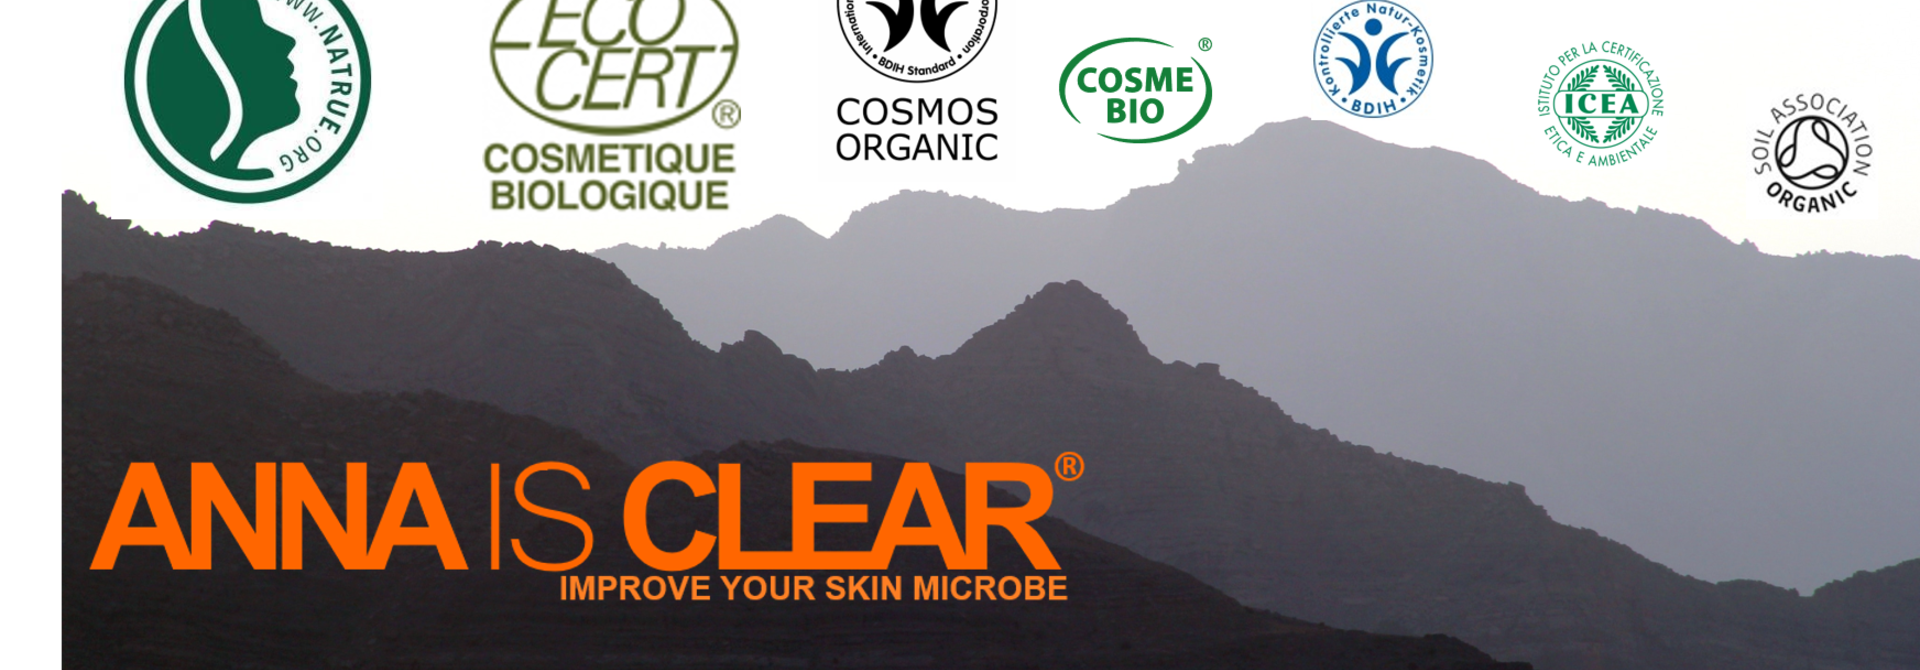 Natural based ingredients and organic cosmetic logo's